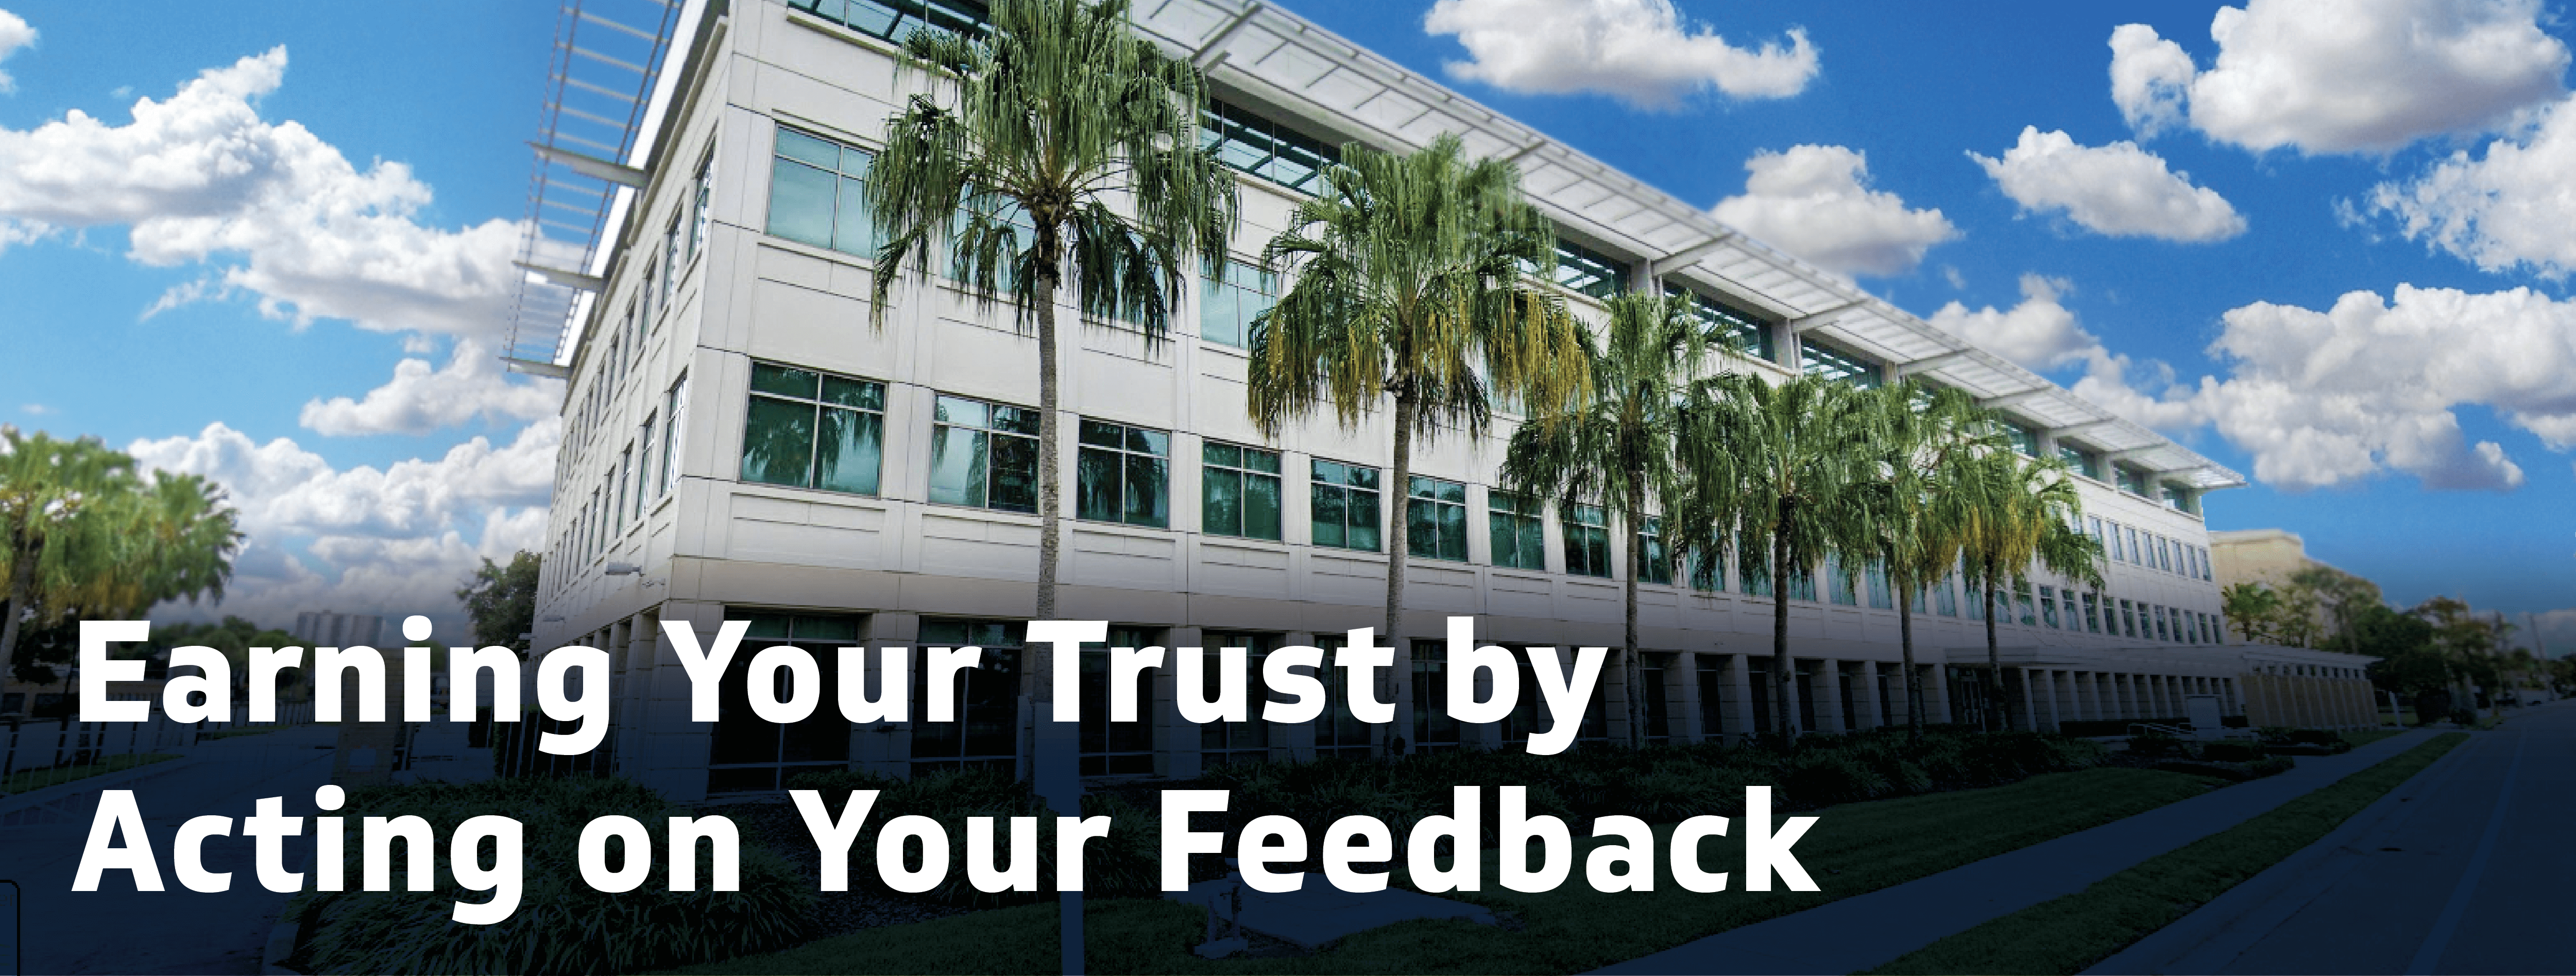 earning your trust by acting on your feedback